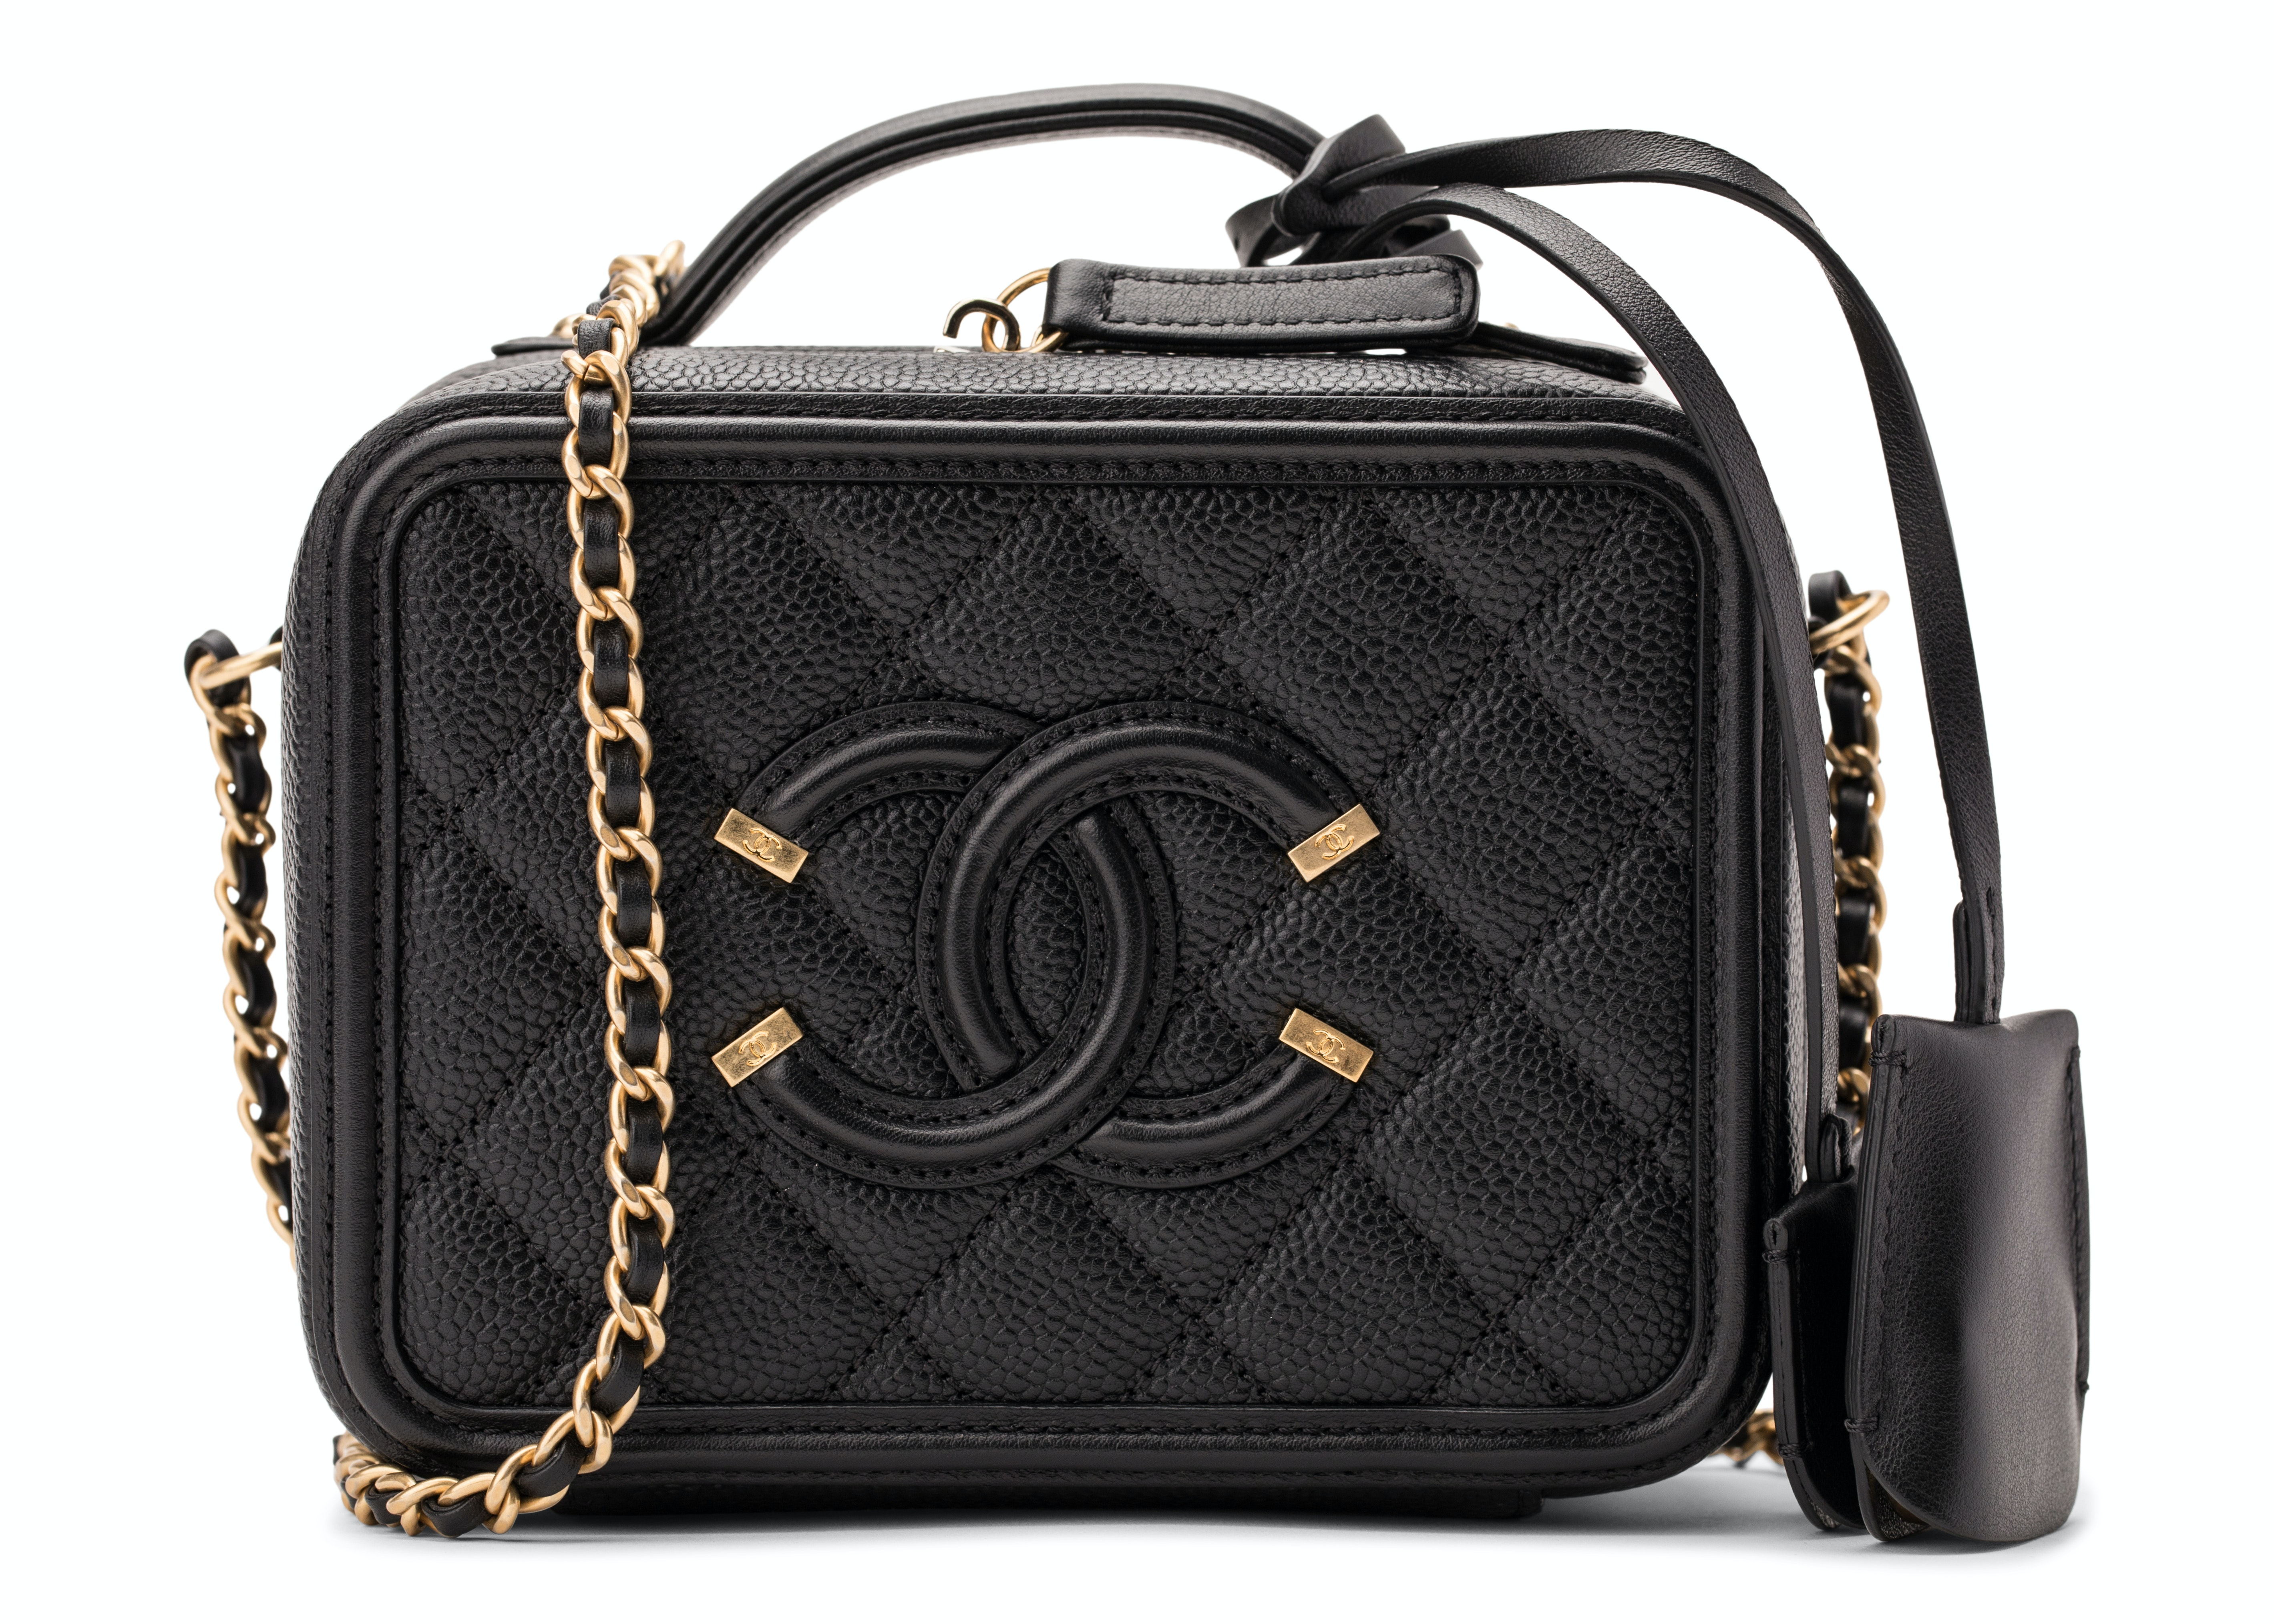 Chanel Vanity Case Diamond Quilted CC Filigree Small Black